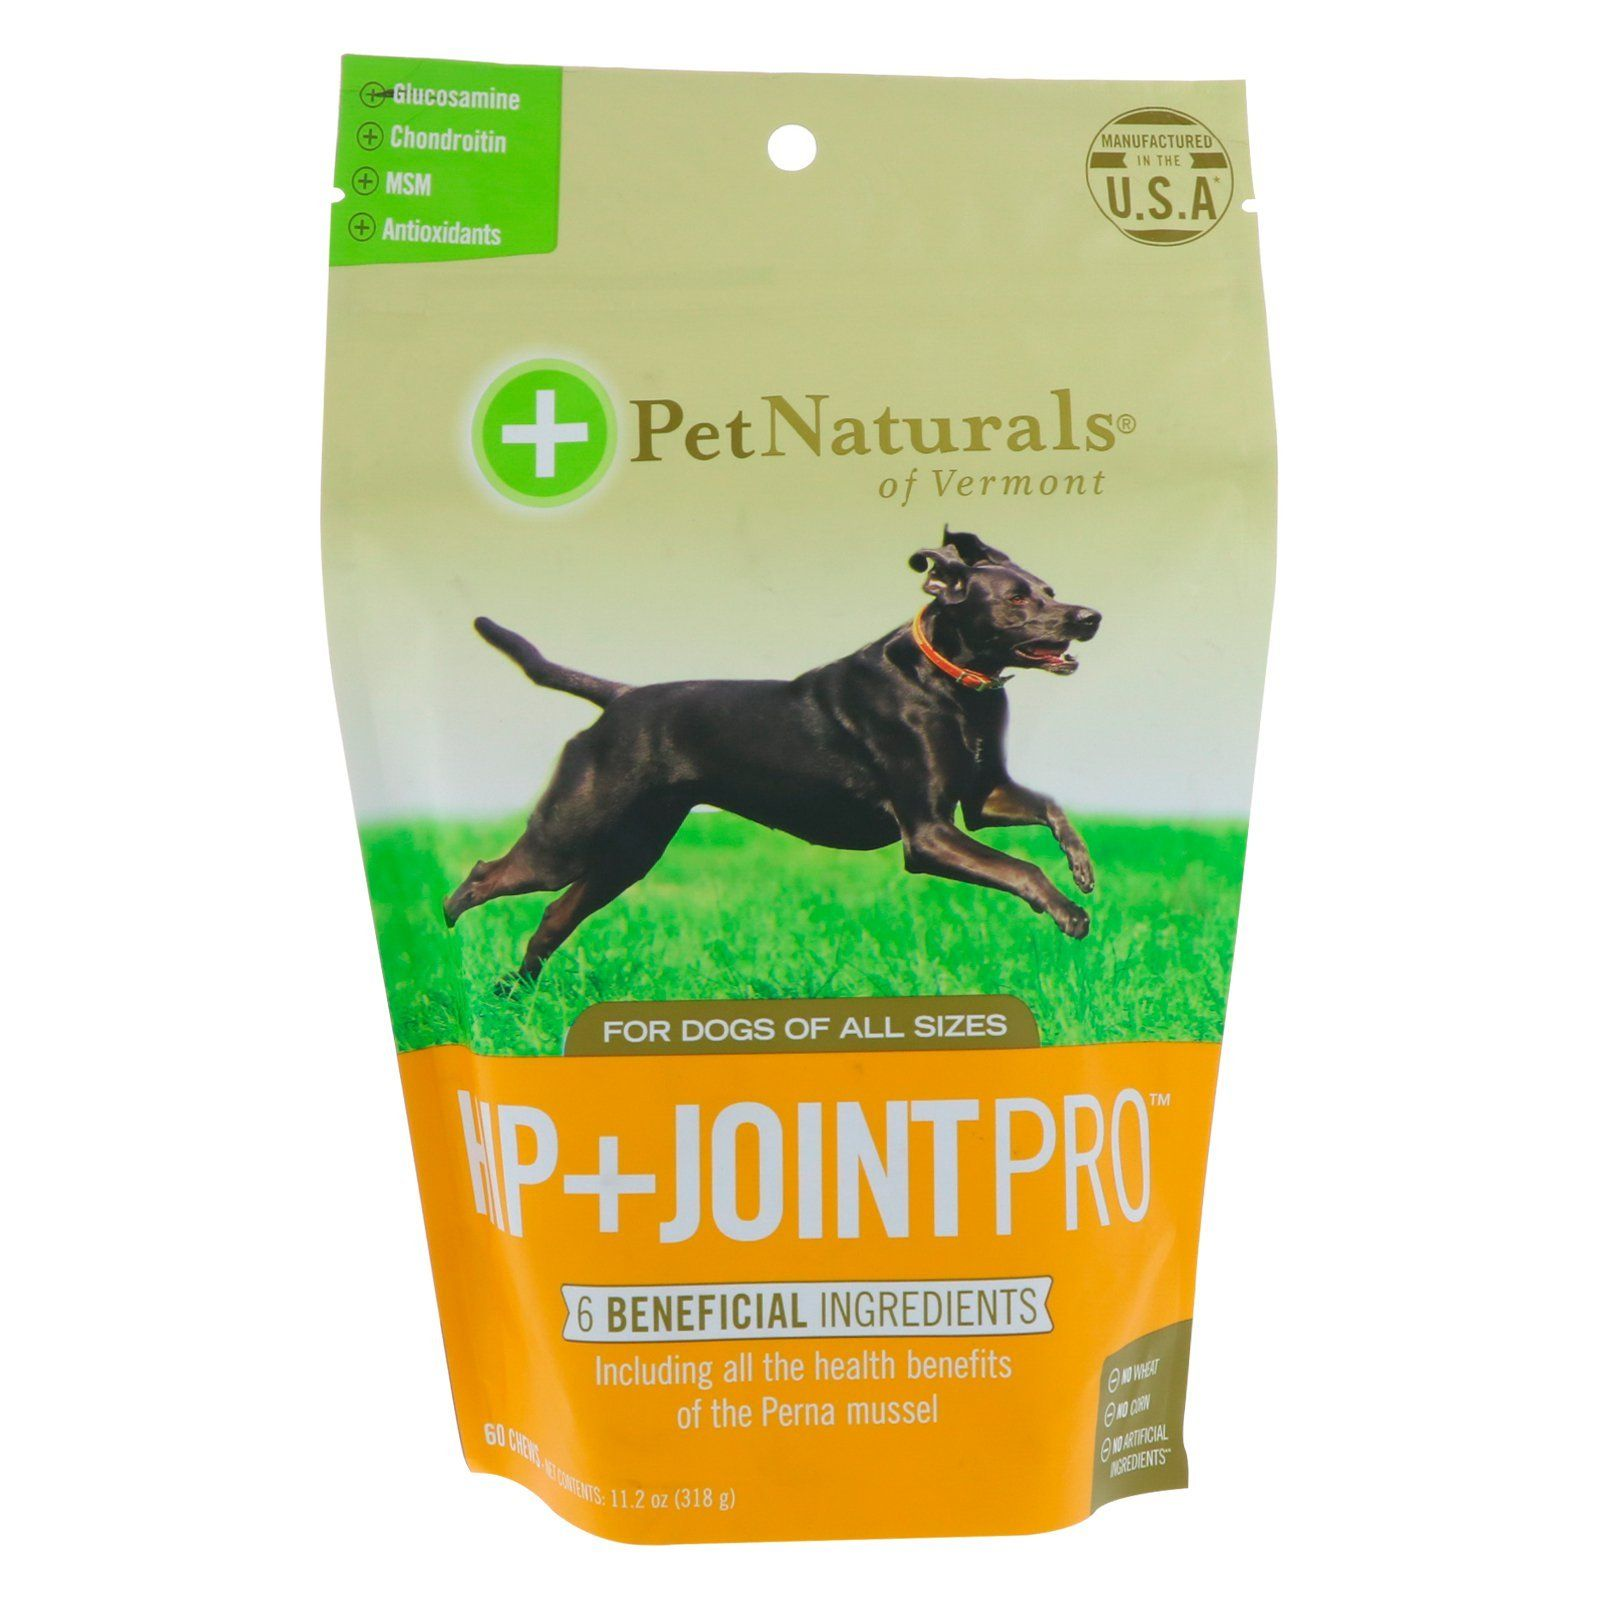 Pet naturals of vermont hip joint pro for dogs 60